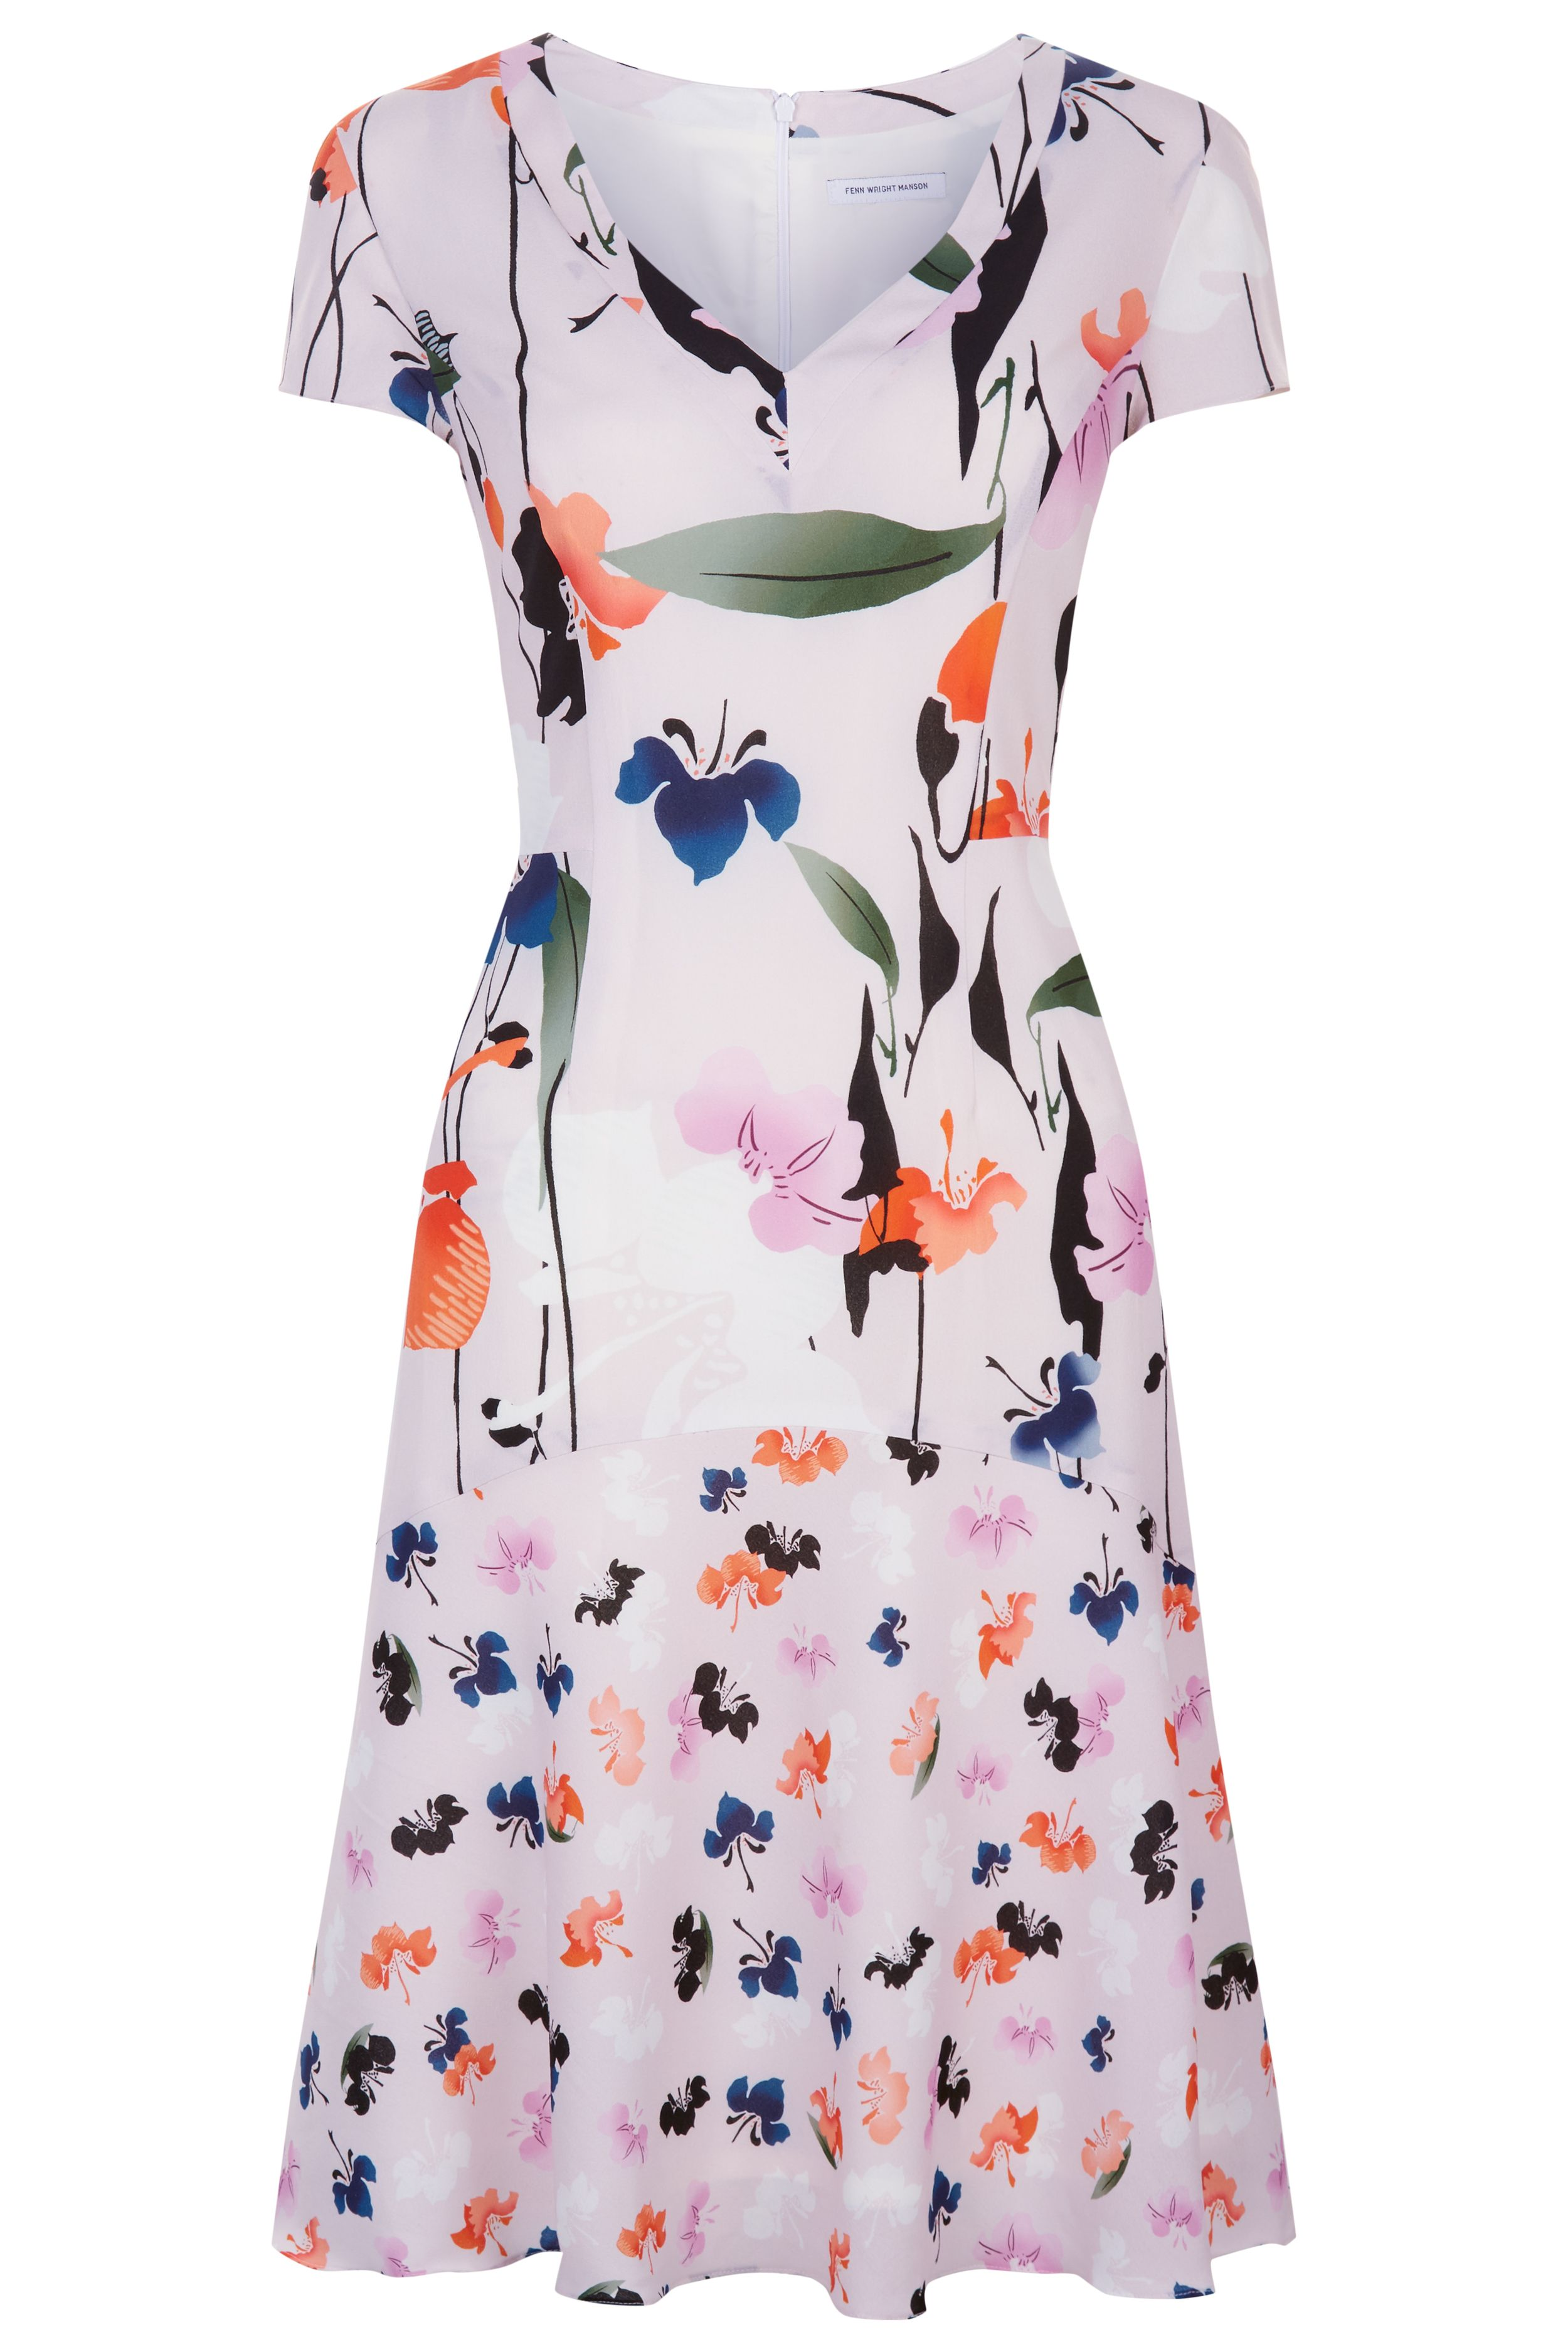 Fenn Wright Manson Majorca Dress, Multi-Coloured